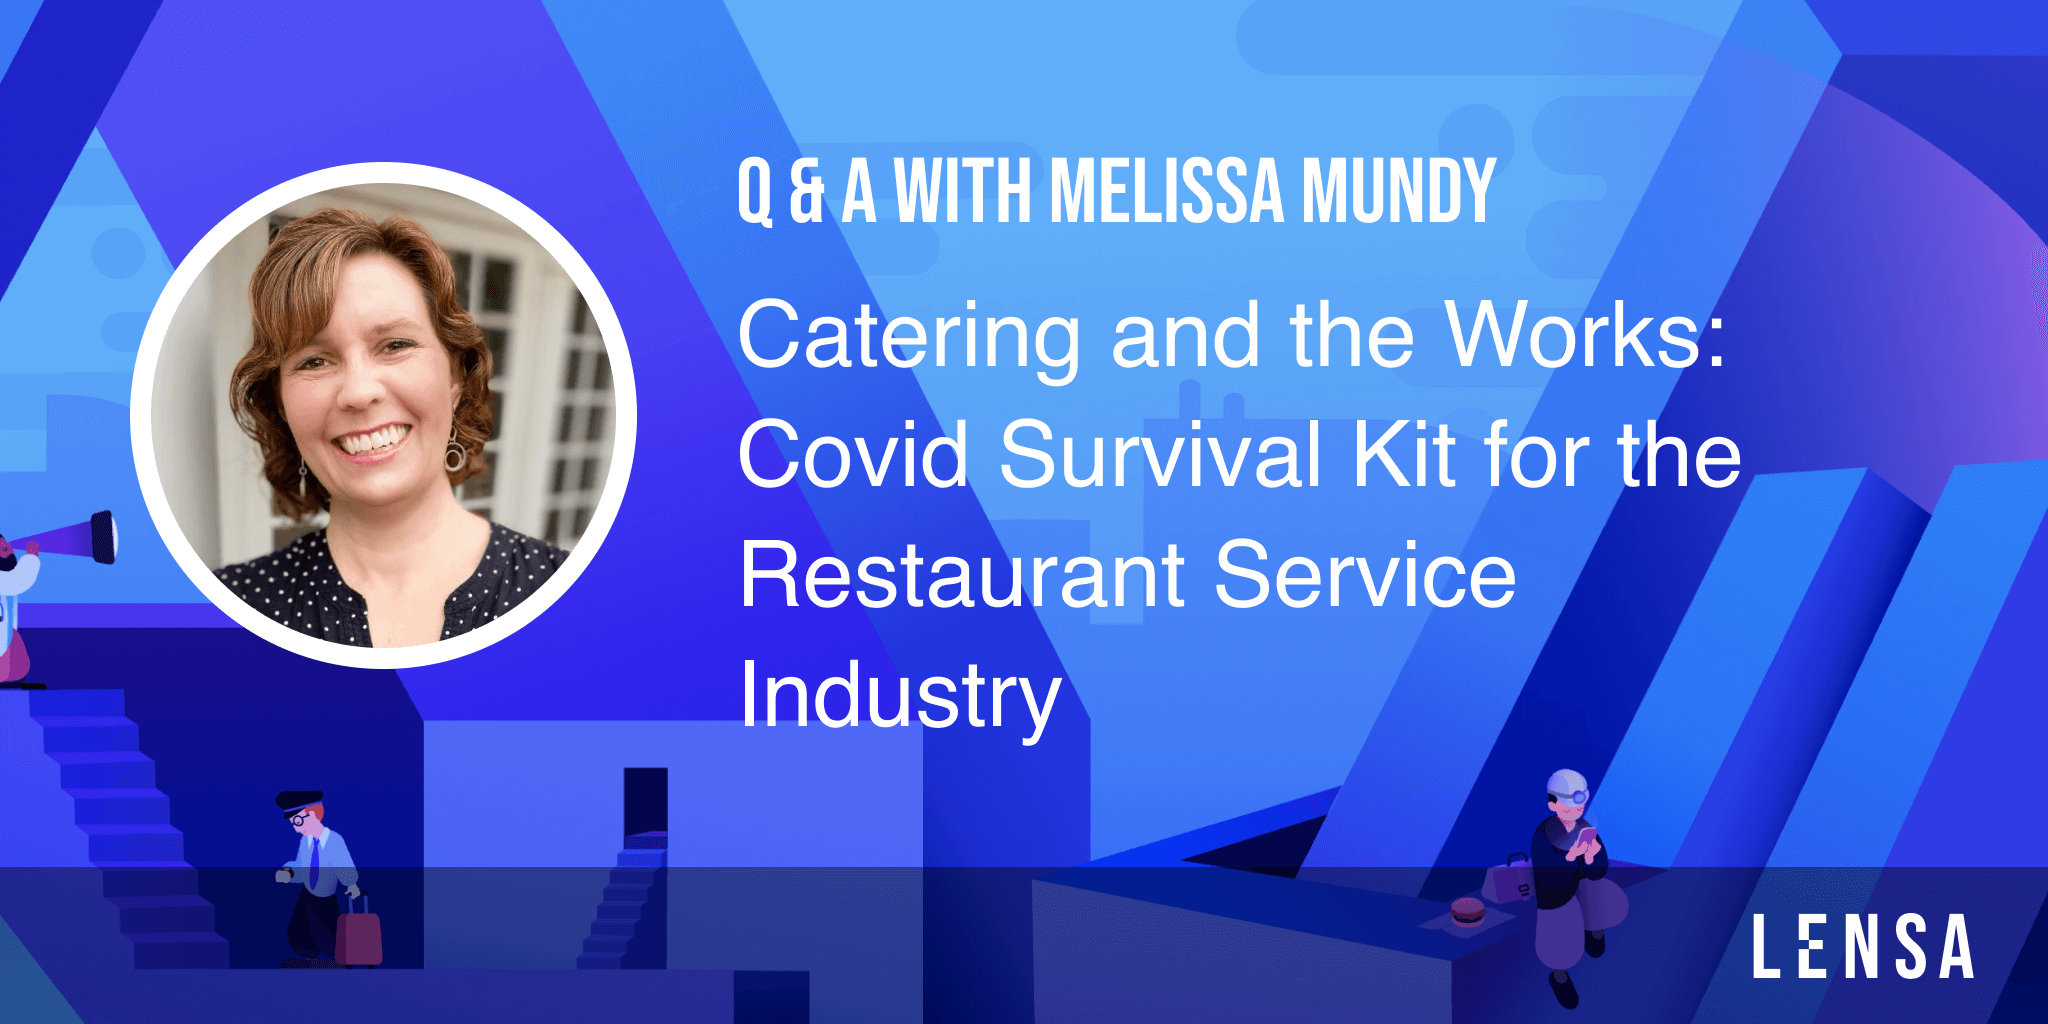 Melissa Mundy Q&A about restaurant service industry during covid